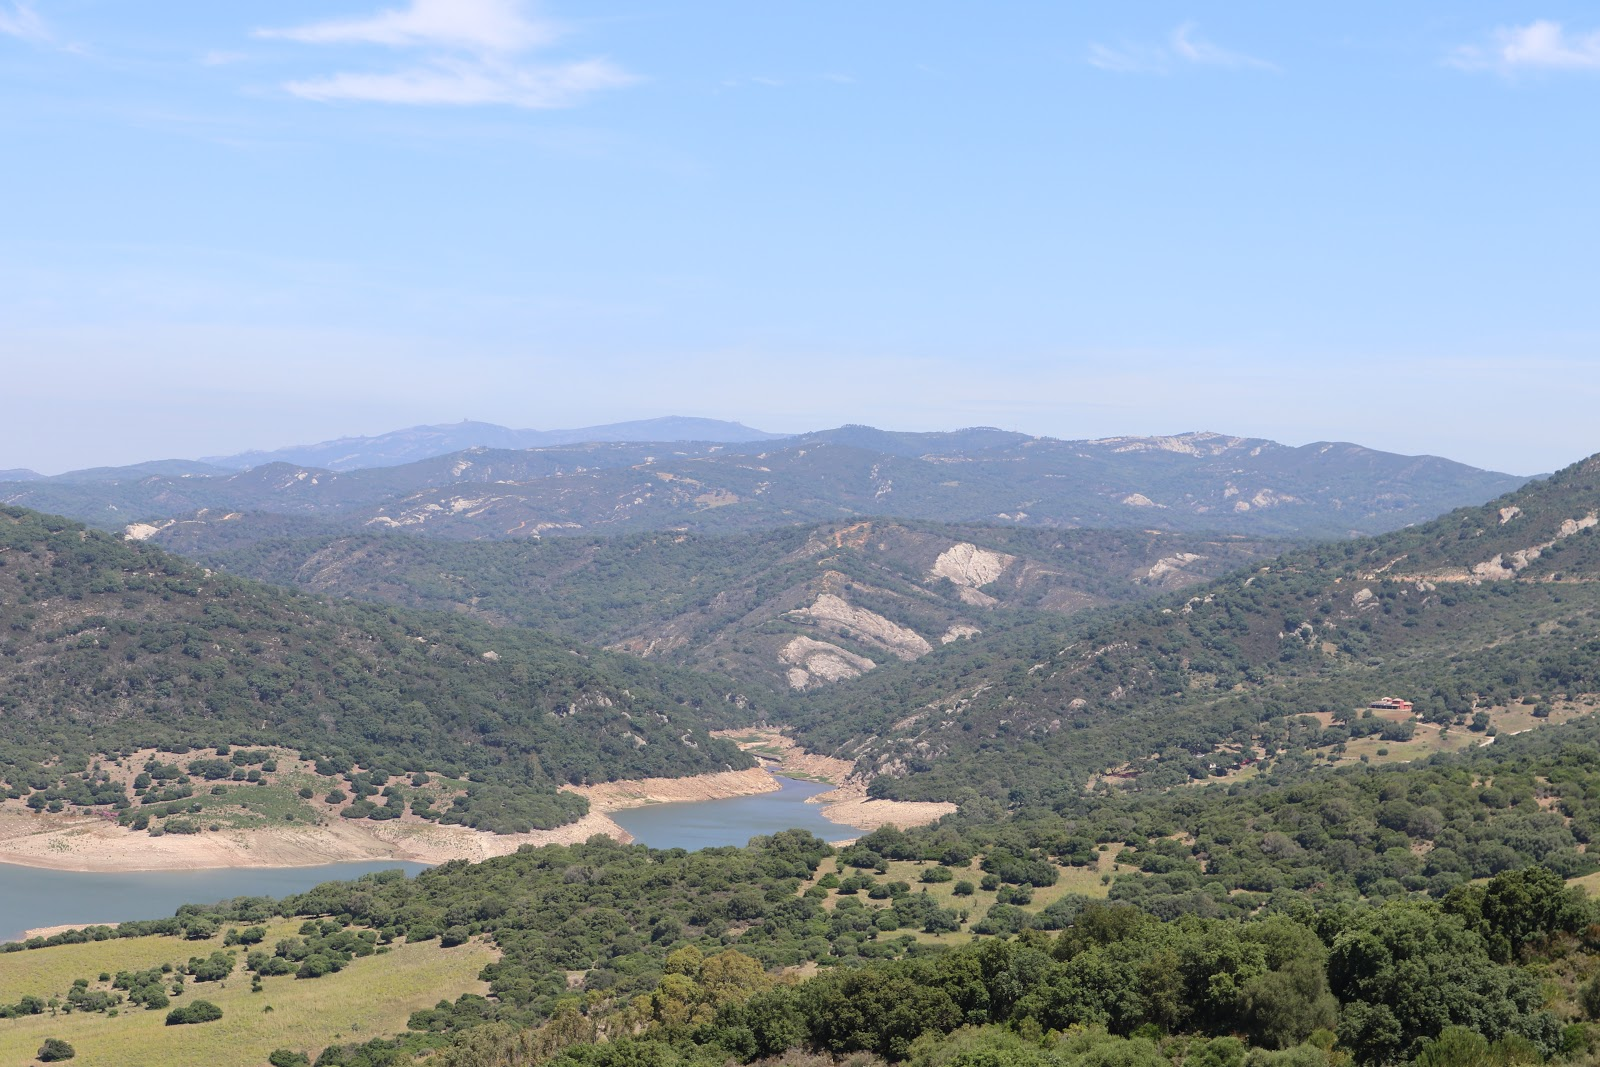 View from Castillo De Castellar de la Frontera, Spain